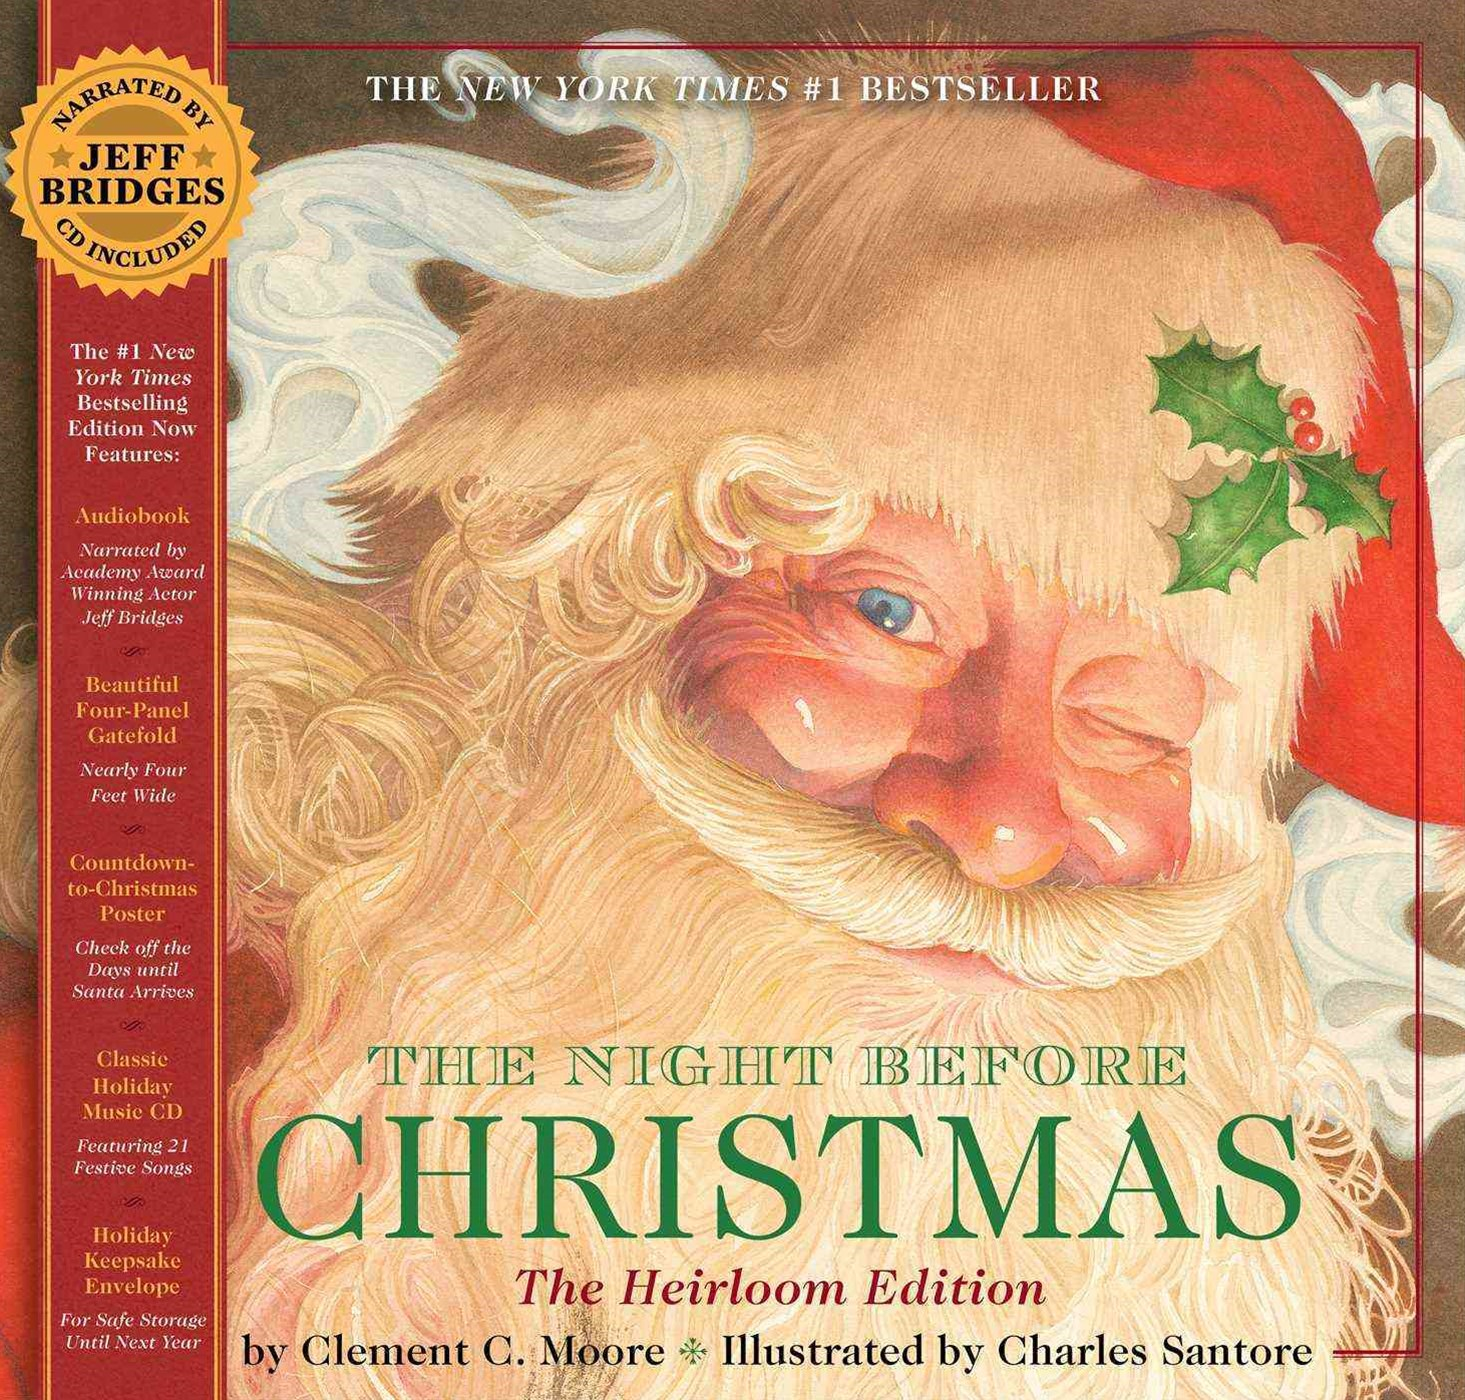 The Night Before Christmas: The Heirloom Edition